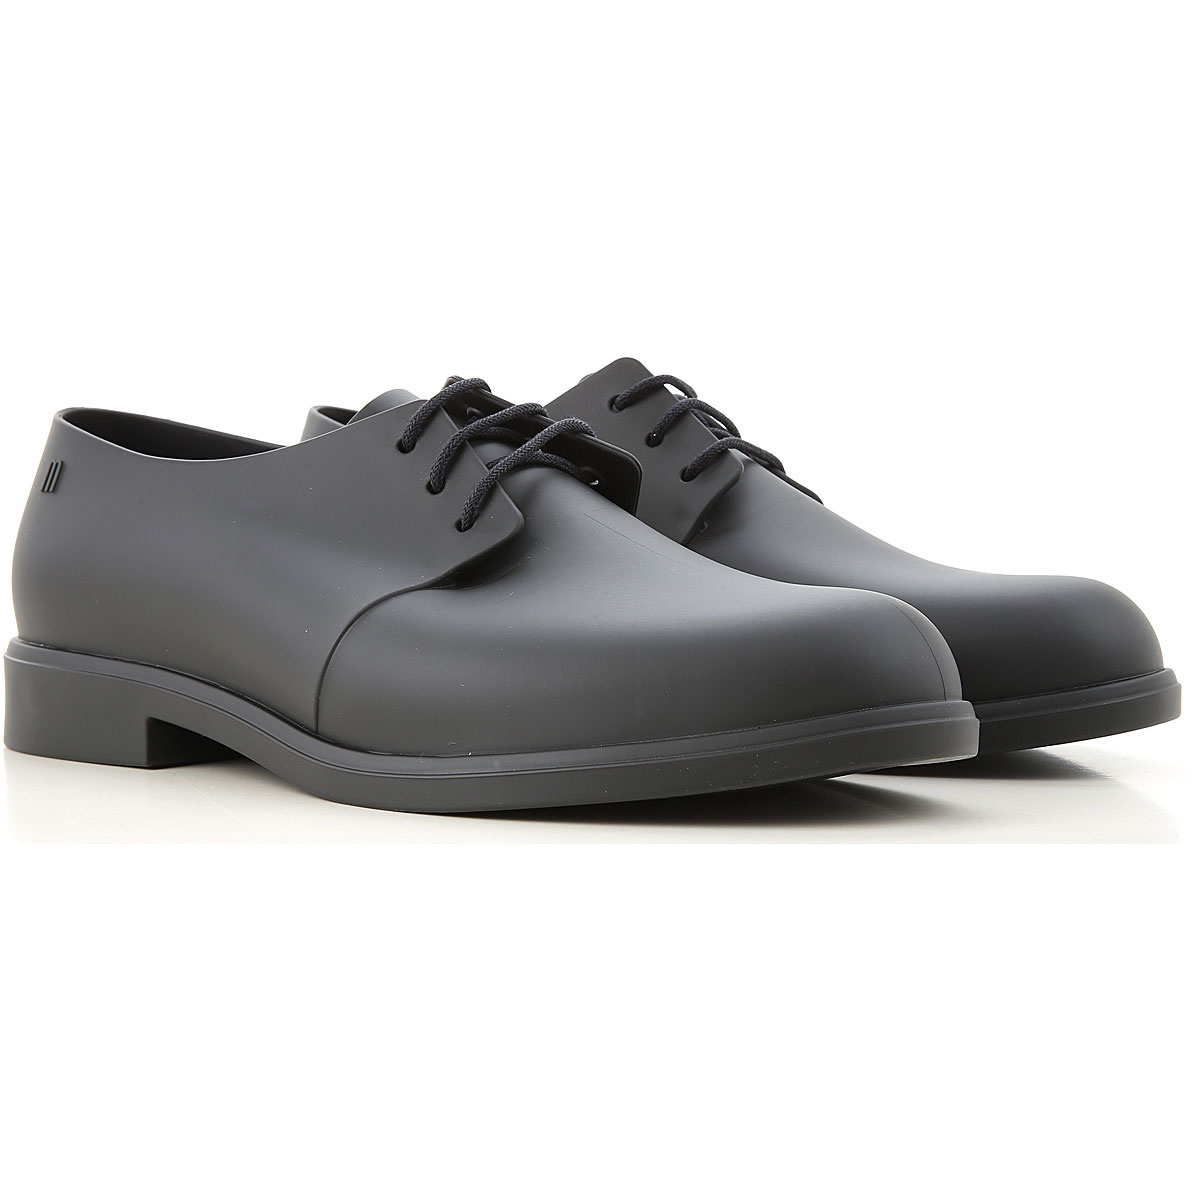 Melissa Lace Up Shoes for Men Oxfords Derbies and Brogues SE - GOOFASH